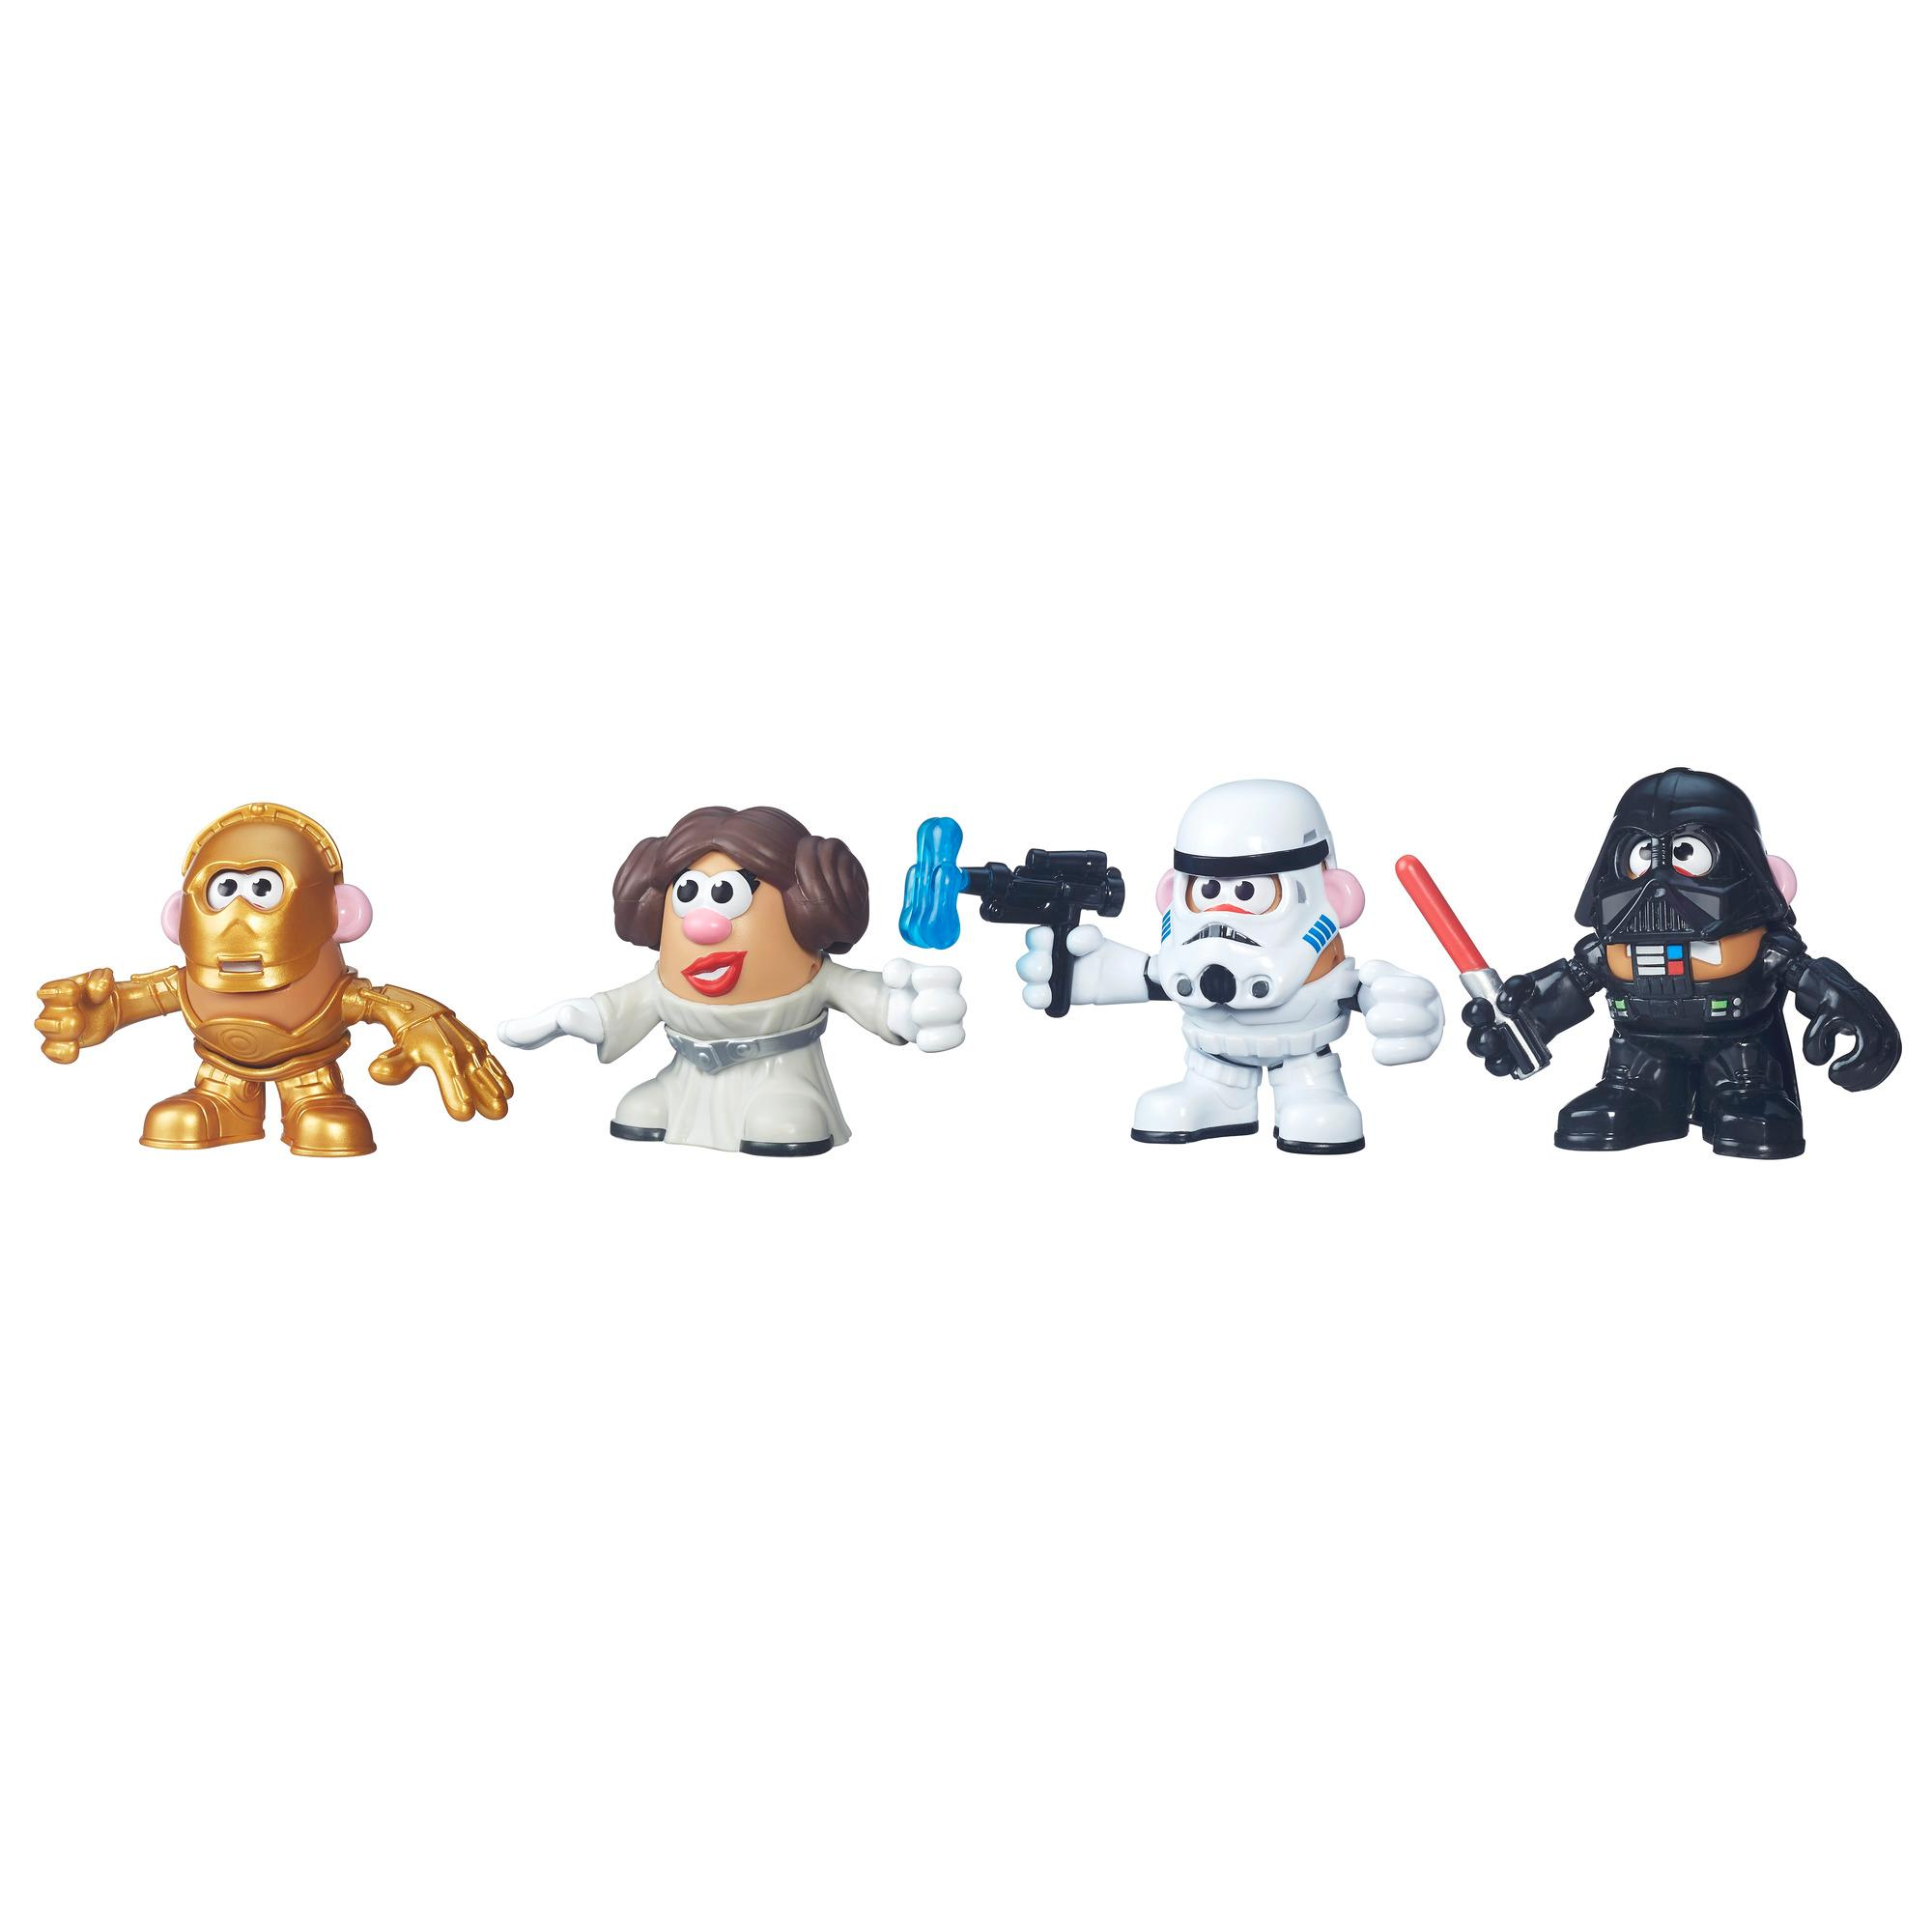 Playskool Friends Mr. Potato Head Star Wars Multi-Pack